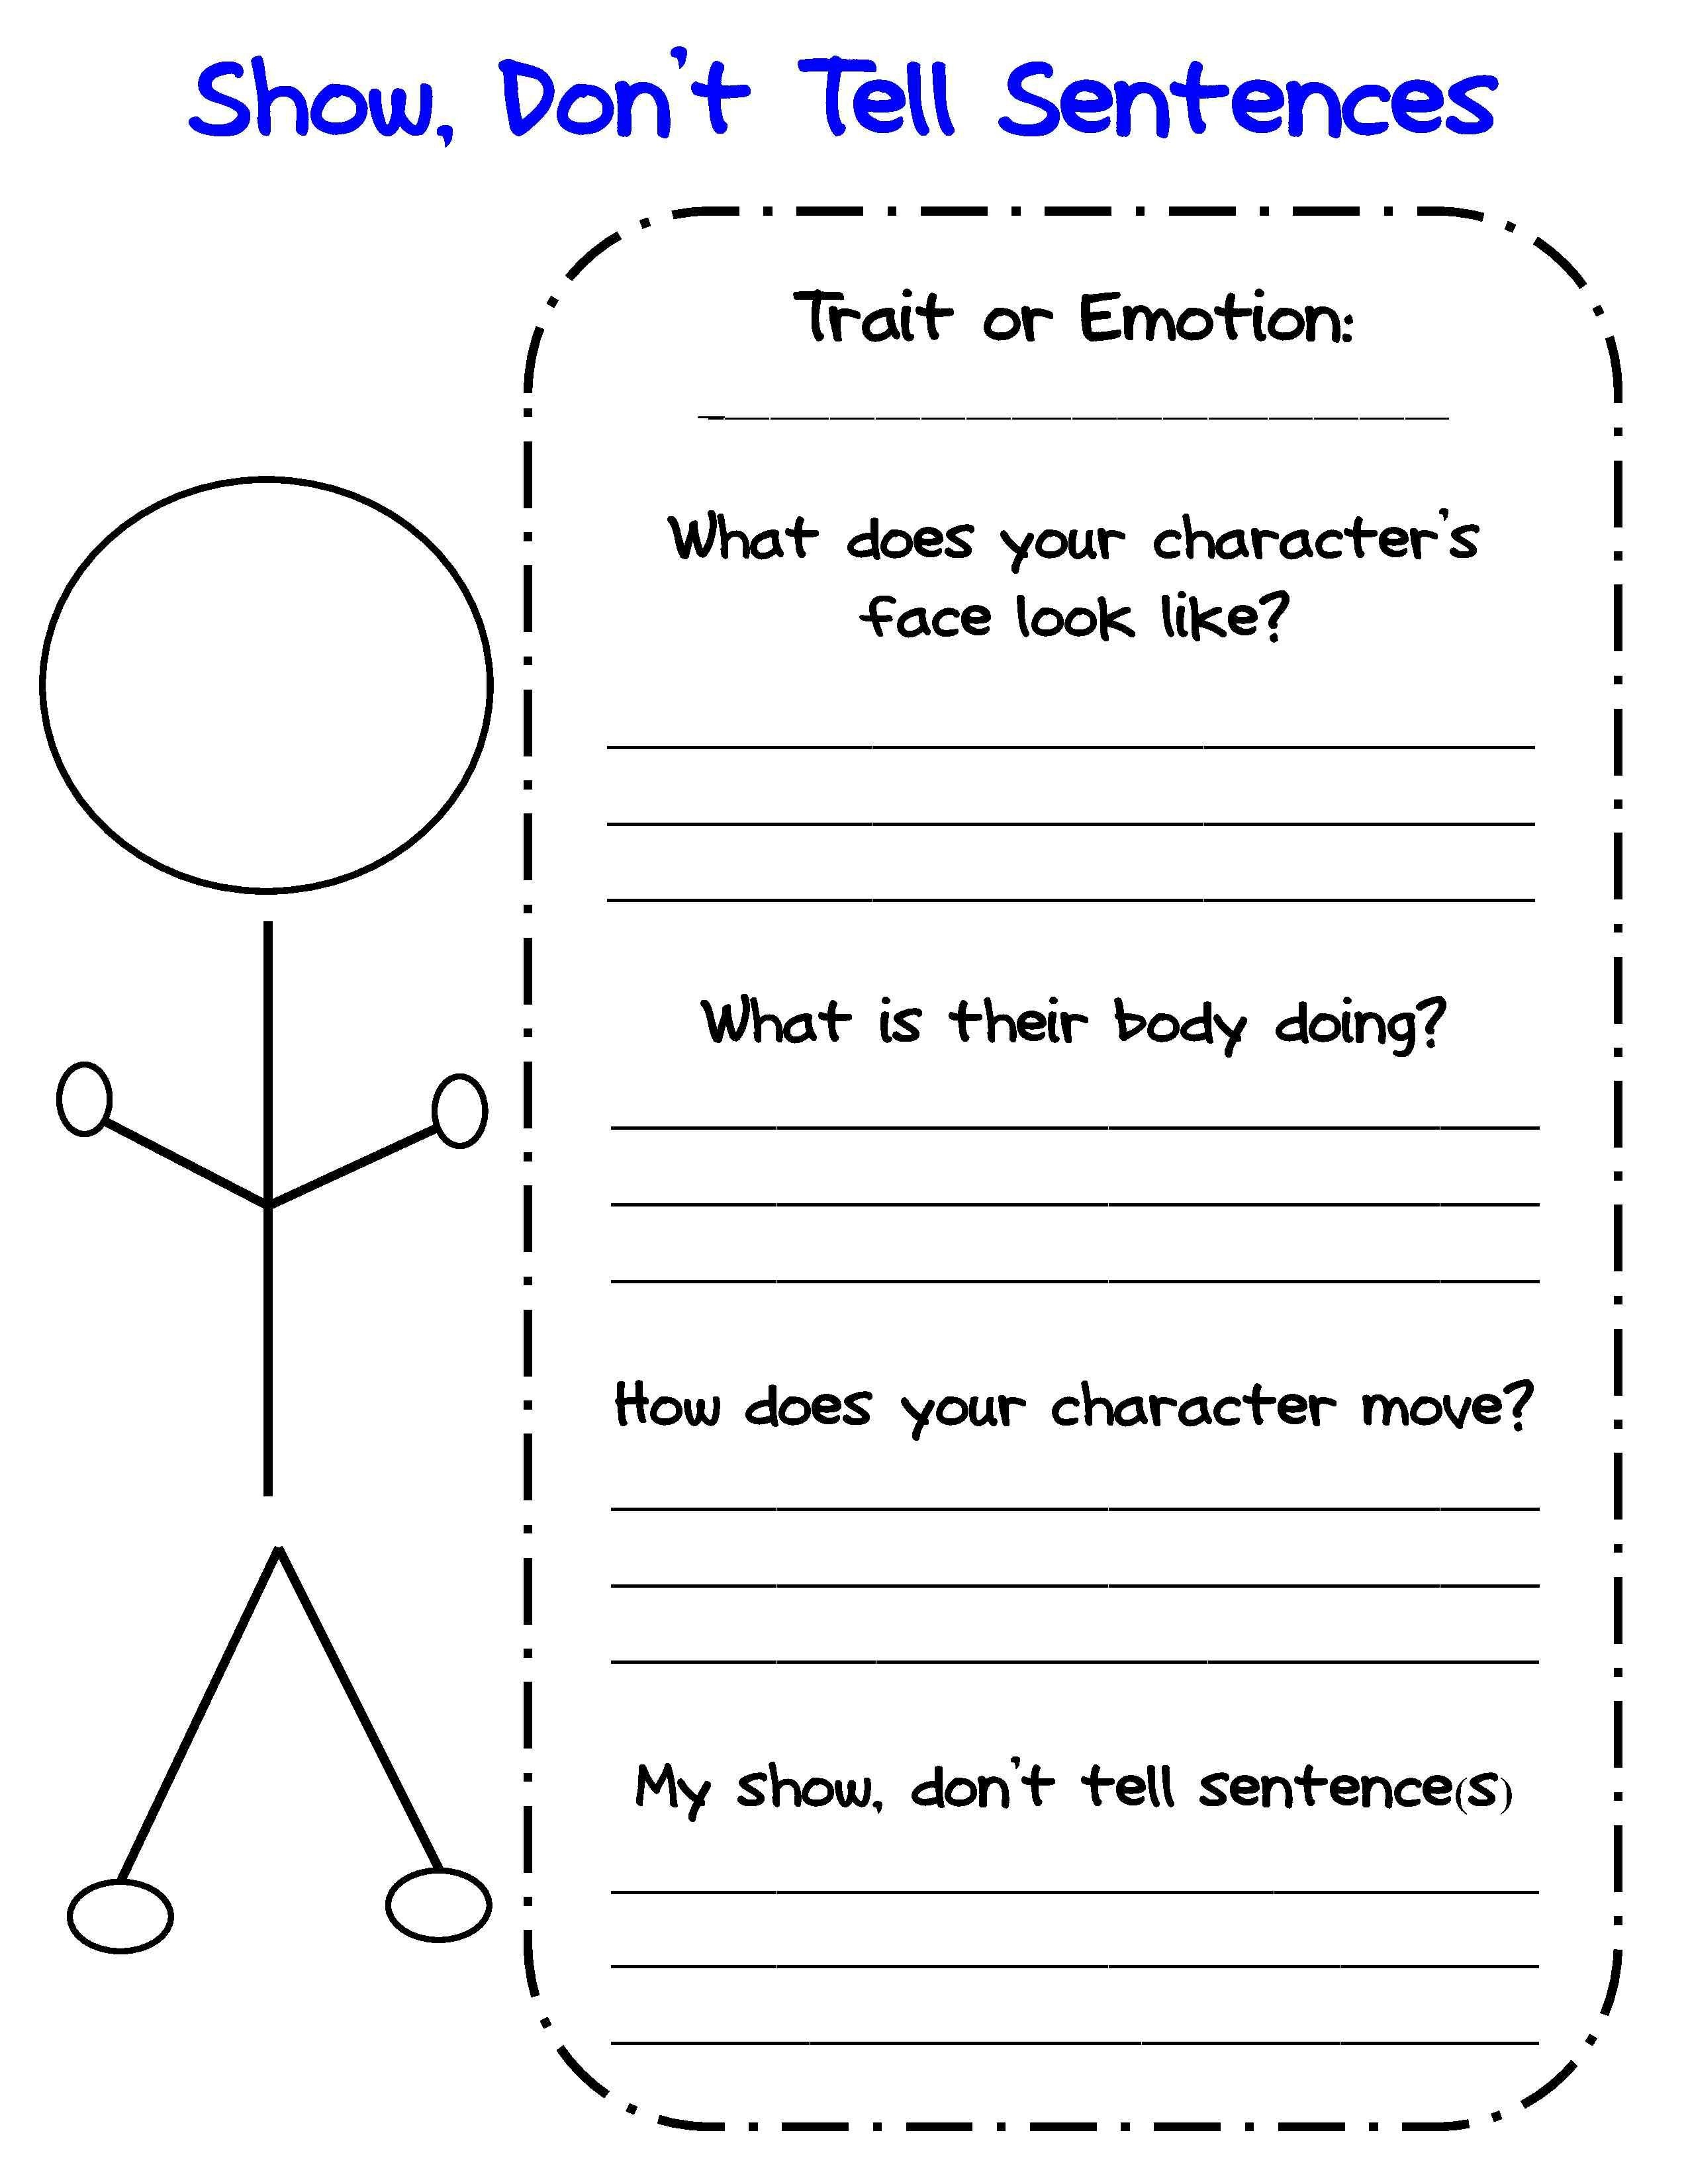 Free Show Don't Tell Graphic Organizer For Writing About Characters - Free Printable Character Traits Graphic Organizer